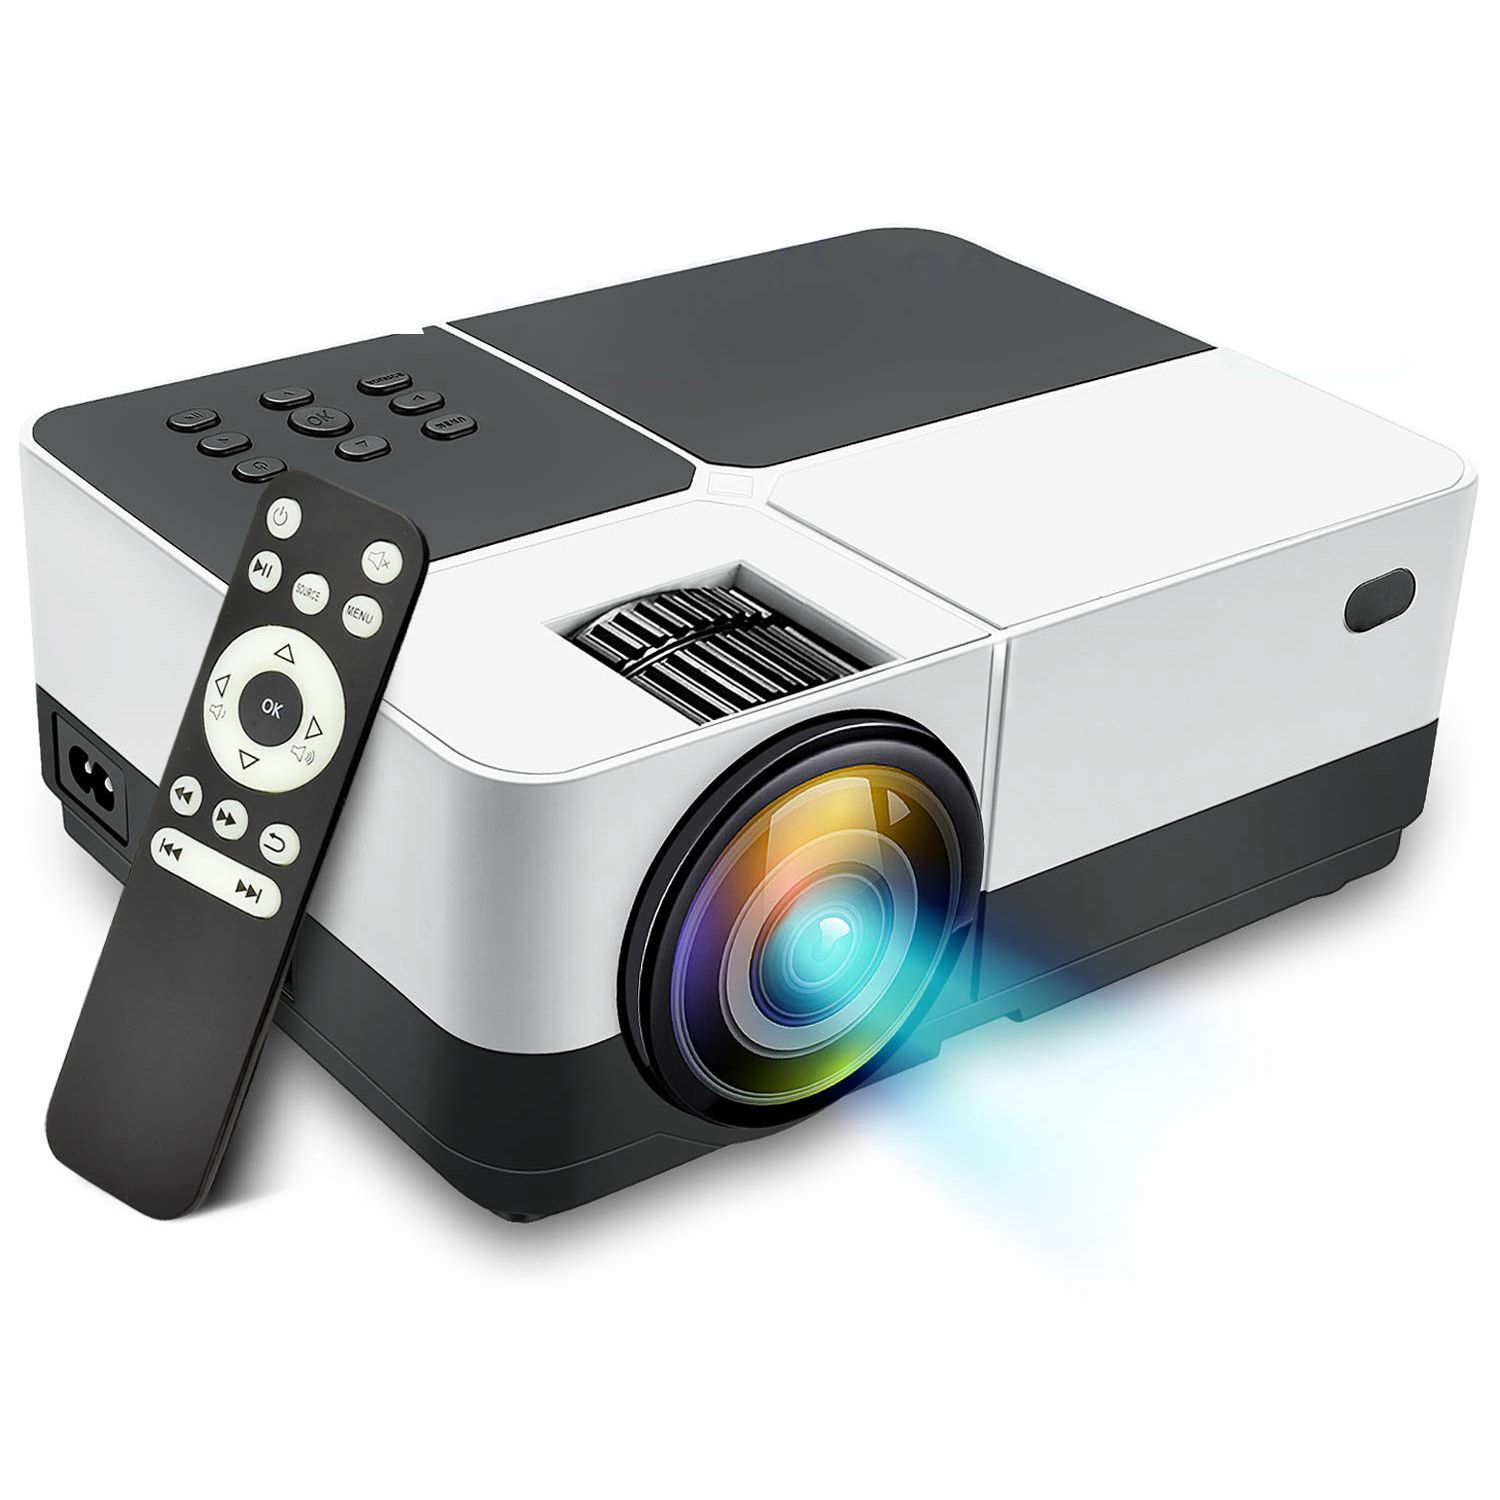 Portable Movie Video LCD LED Projector 2500 Lumens Dolby Surround Sound Home Theater Support 1080PPortable Movie Video LCD LED Projector 2500 Lumens Dolby Surround Sound Home Theater Support 1080P